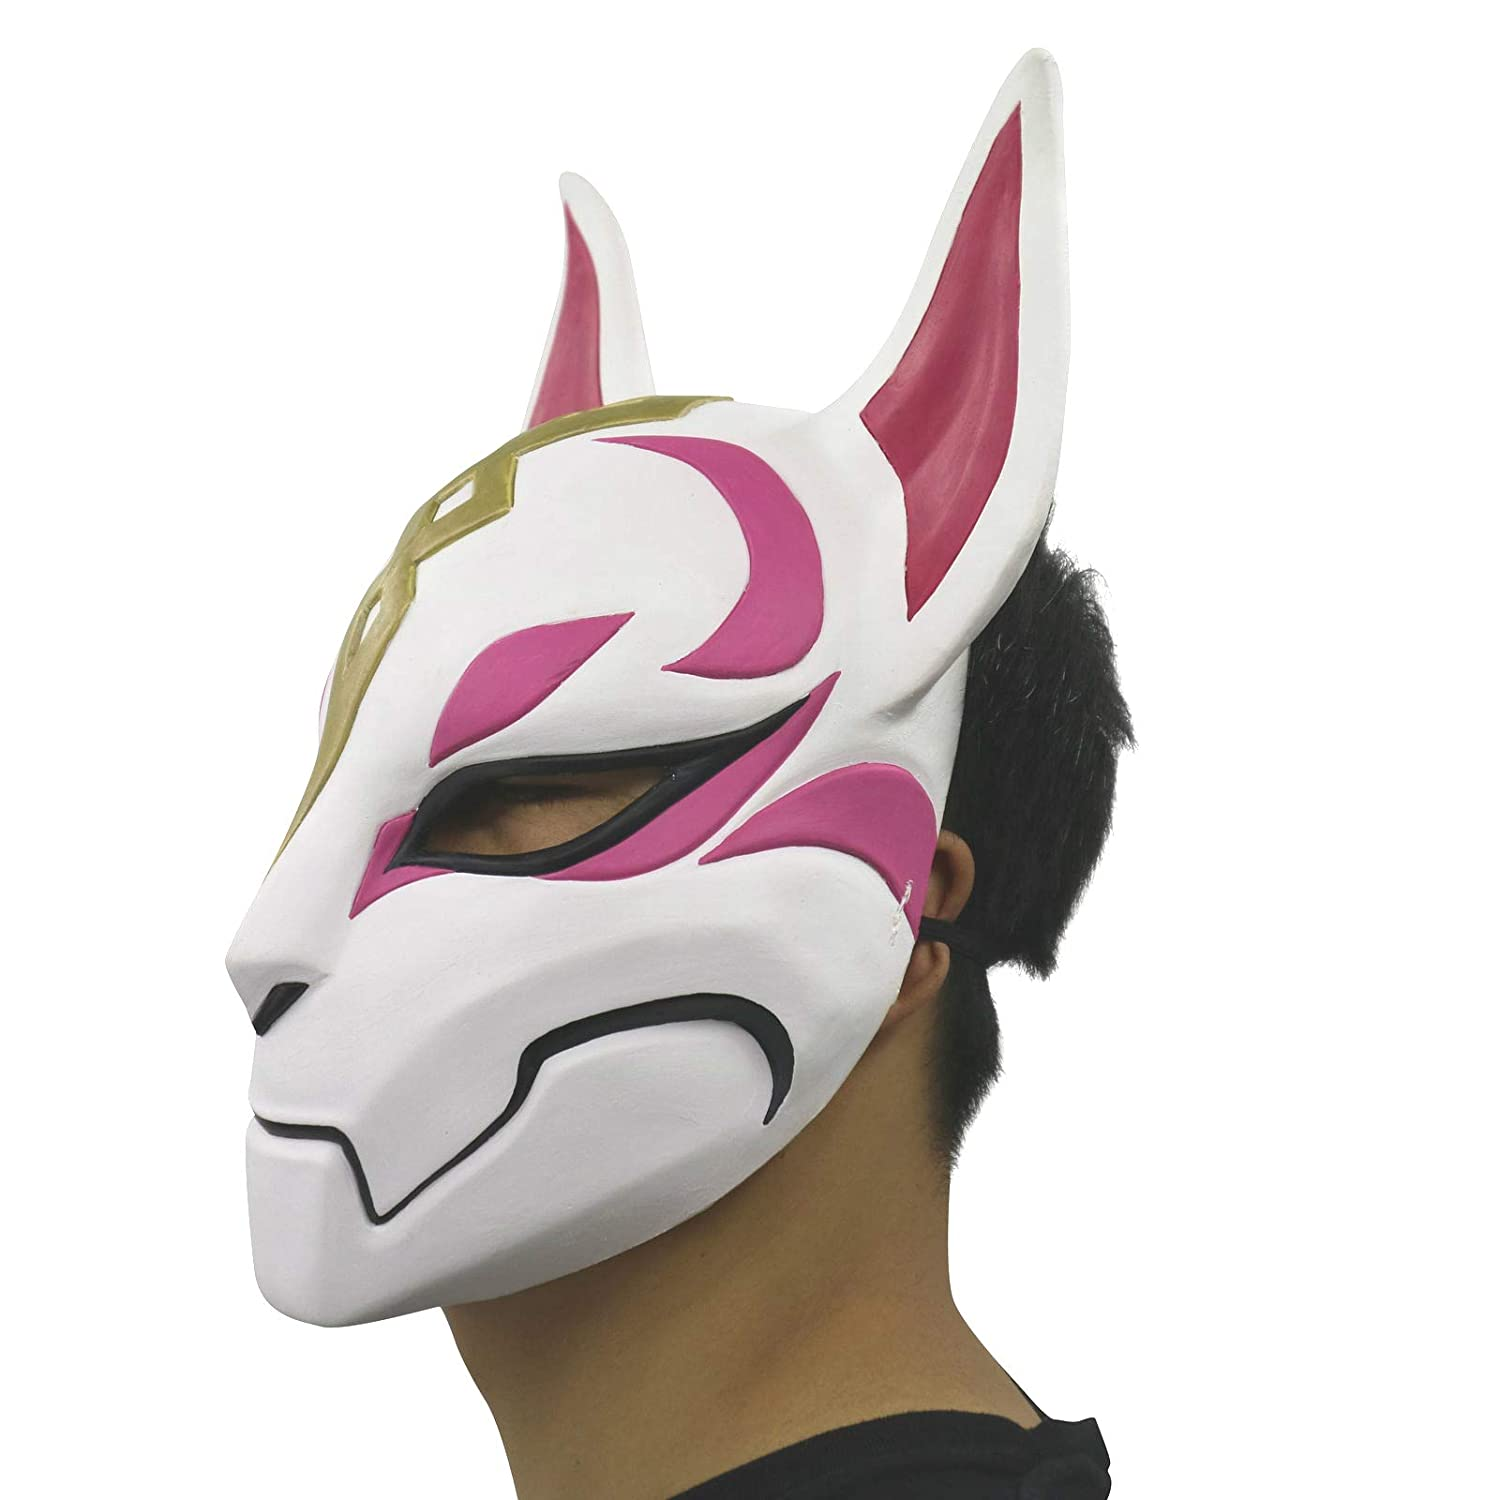 Fortnite Mask for Adult Haloween Cosplay Mask Costume Game Toy